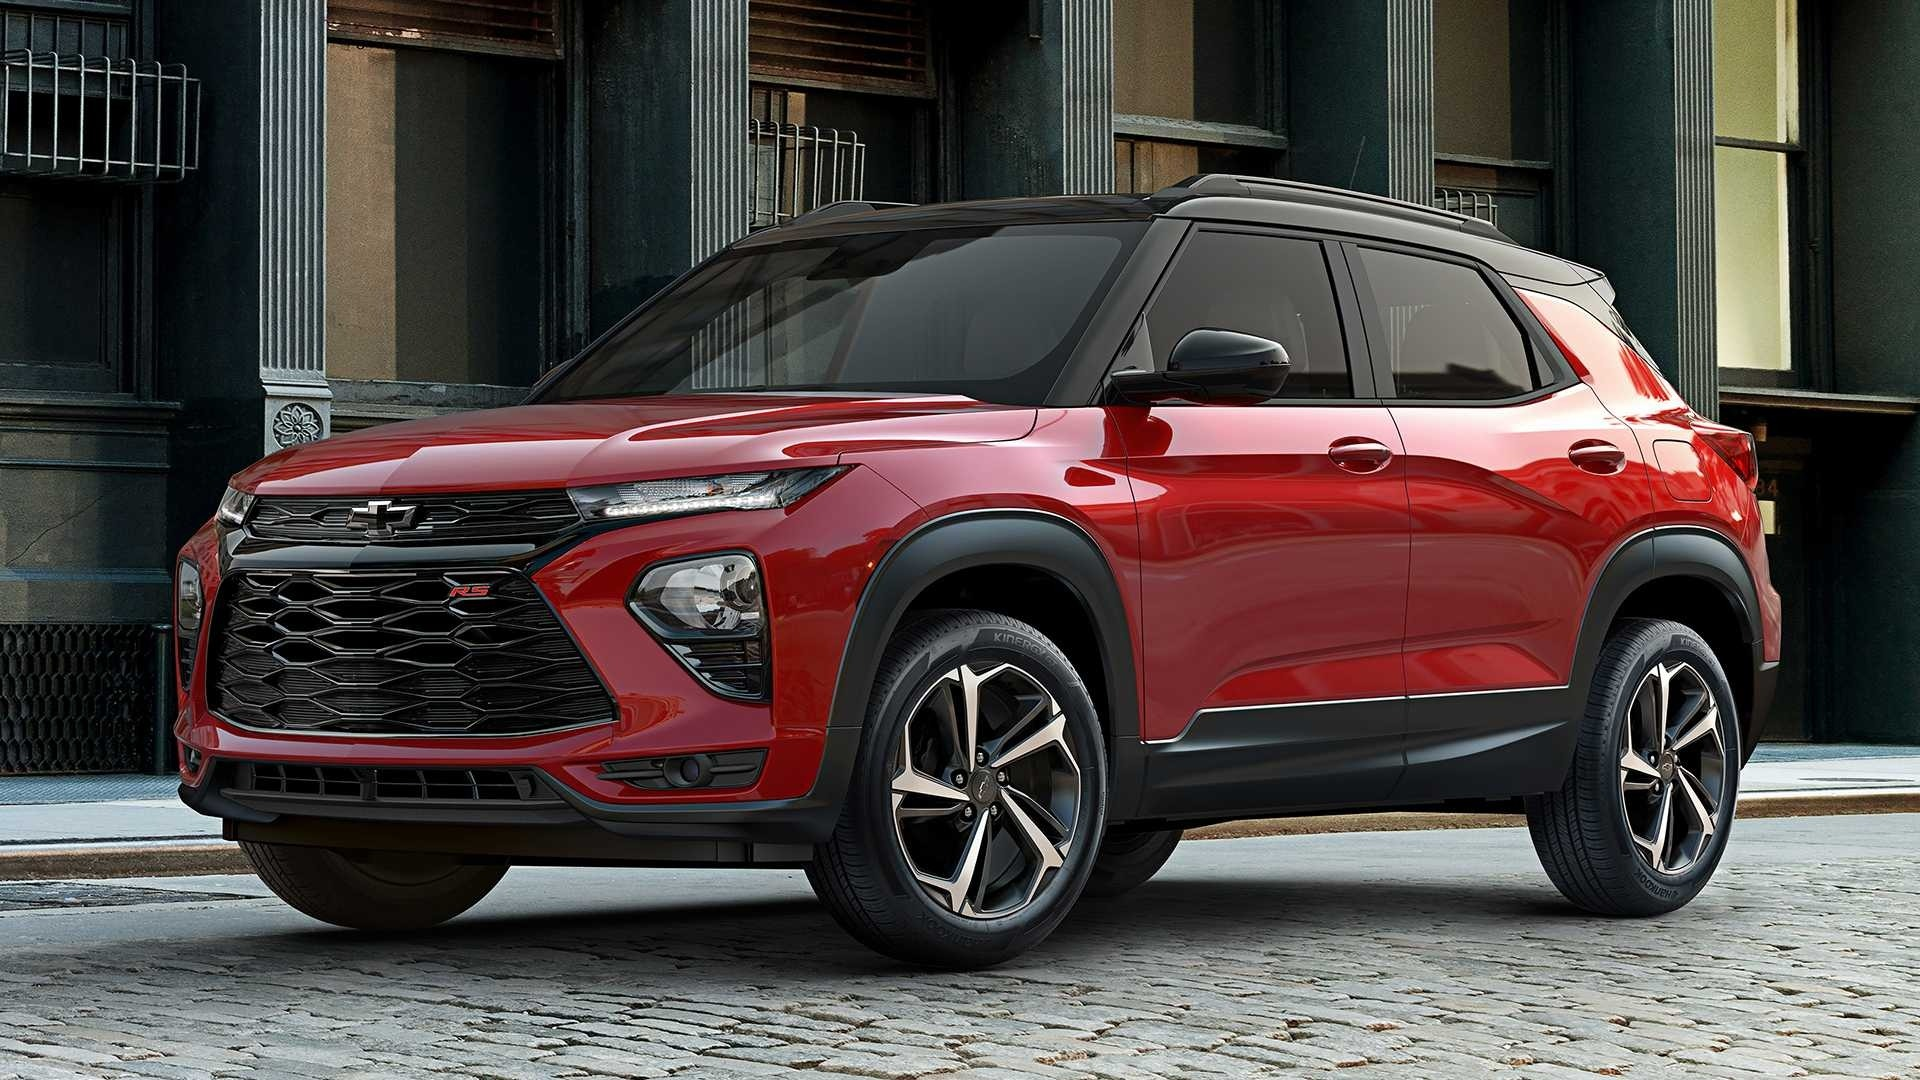 2022 Chevrolet Trailblazer Wallpapers